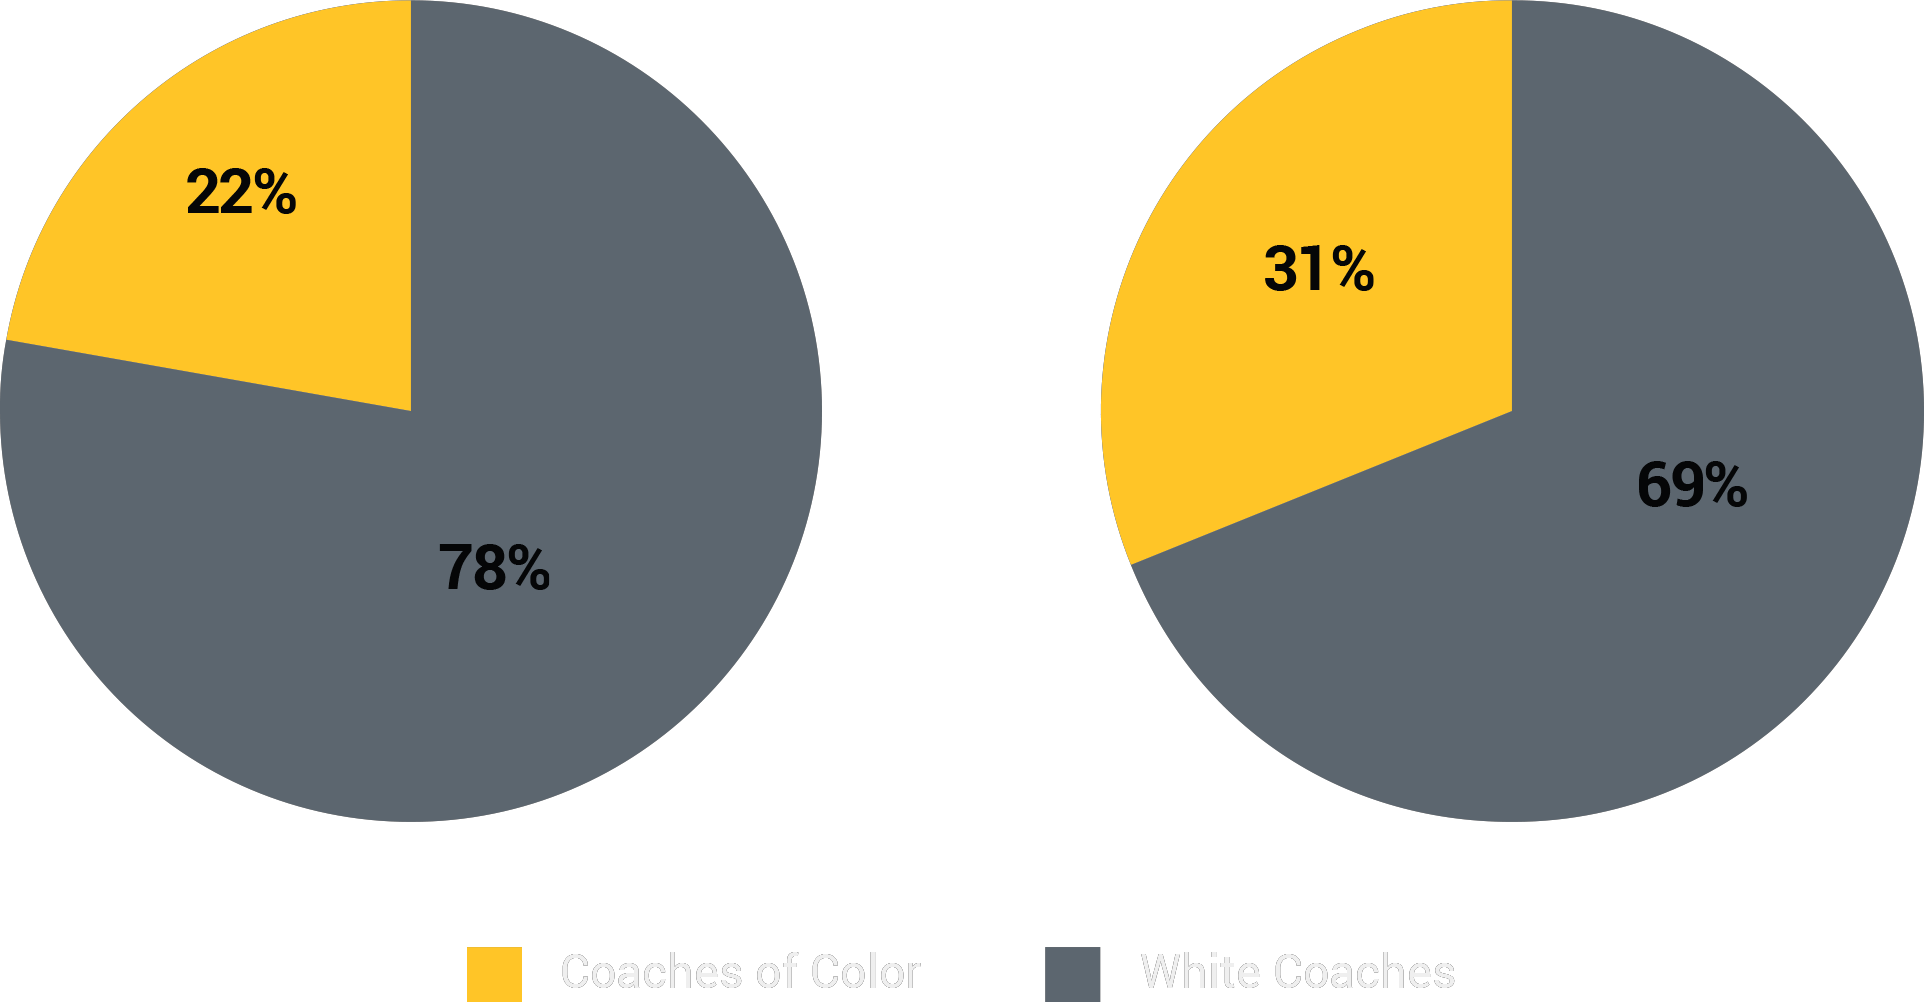 Racial/Ethnic Breakdown of NFL Defensive Coordinators